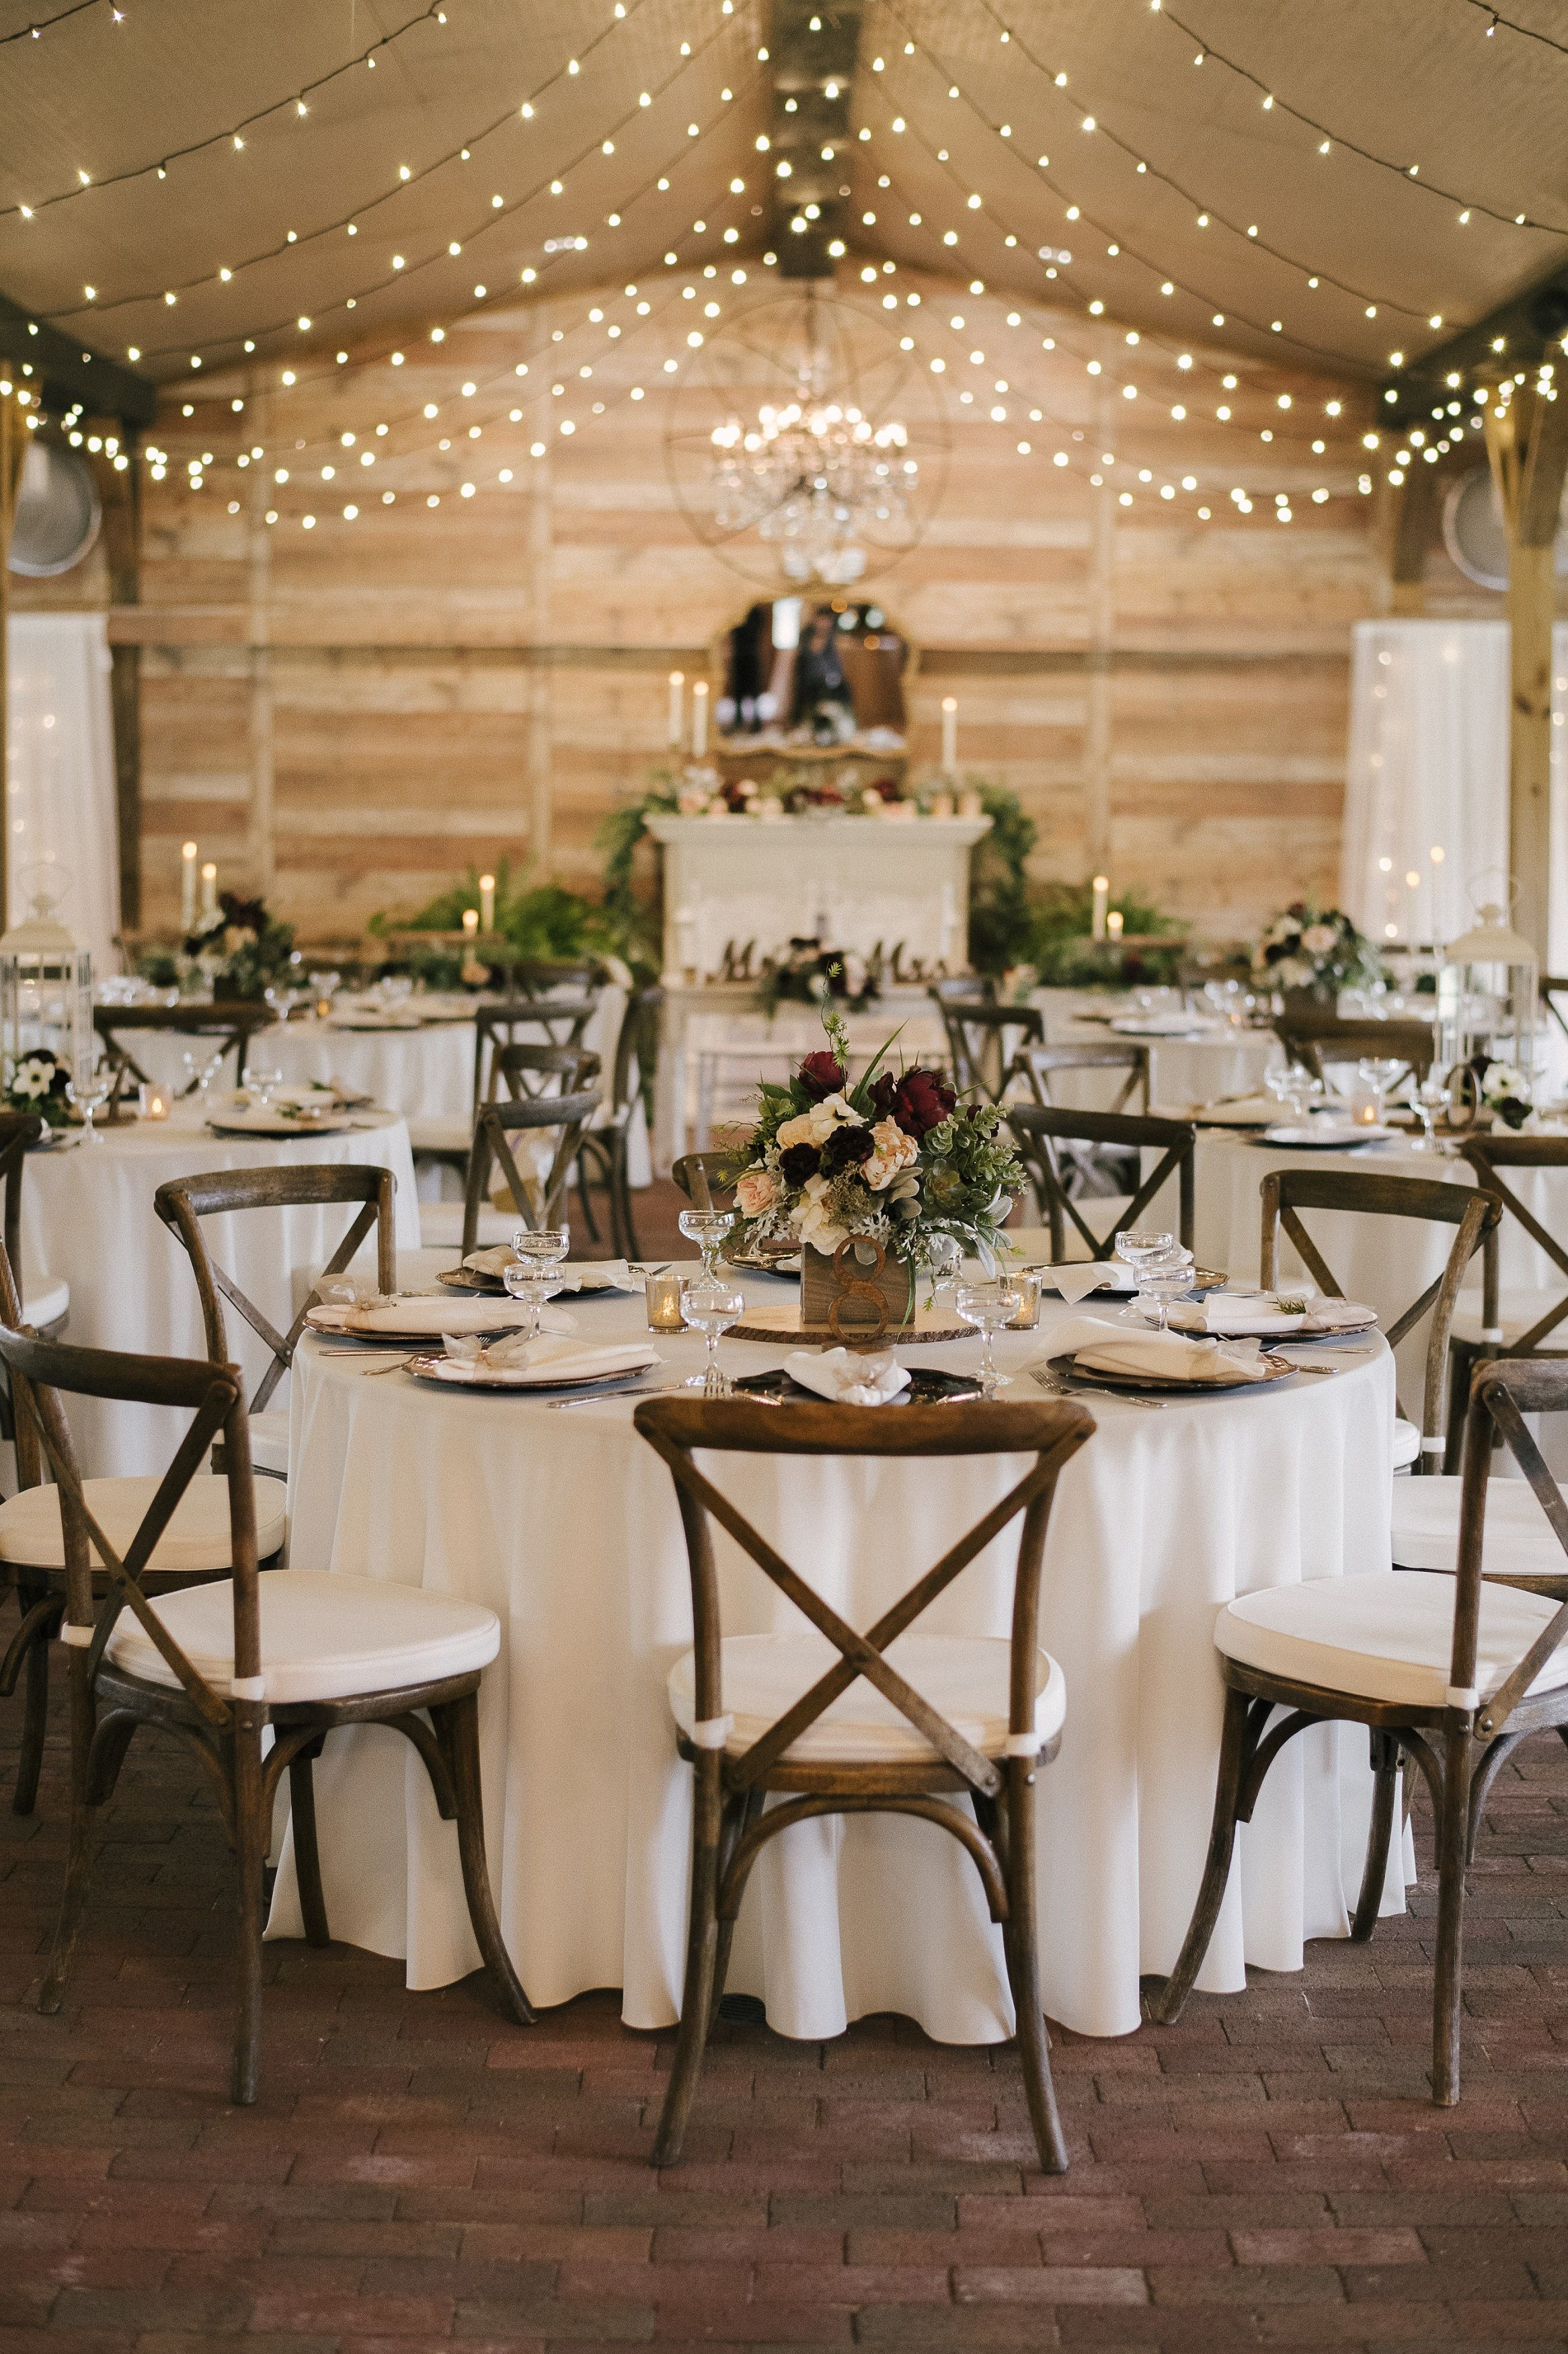 Wedding marquee decoration ideas  Pin by Tialyr Holloway on Holy Matrimony  Pinterest  Wedding